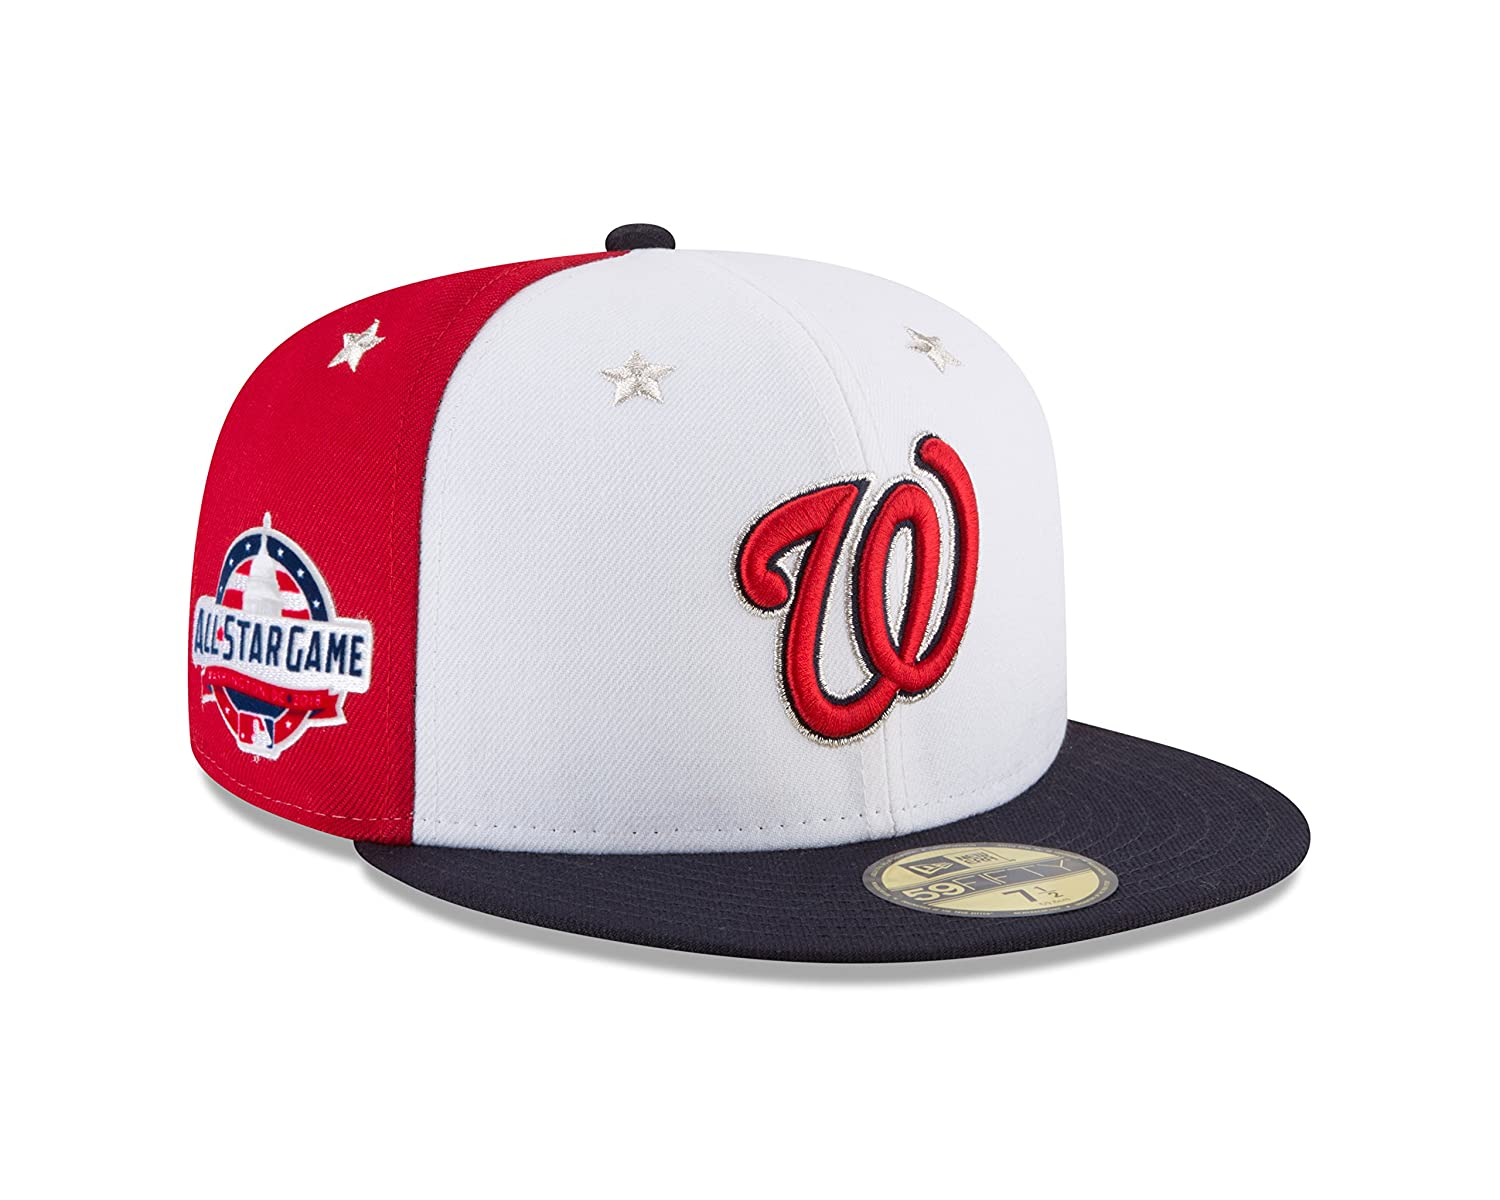 official photos c01a2 9a16b Amazon.com   New Era Washington Nationals 2018 MLB All-Star Game On-Field  59FIFTY Fitted Hat - White Navy   Sports   Outdoors